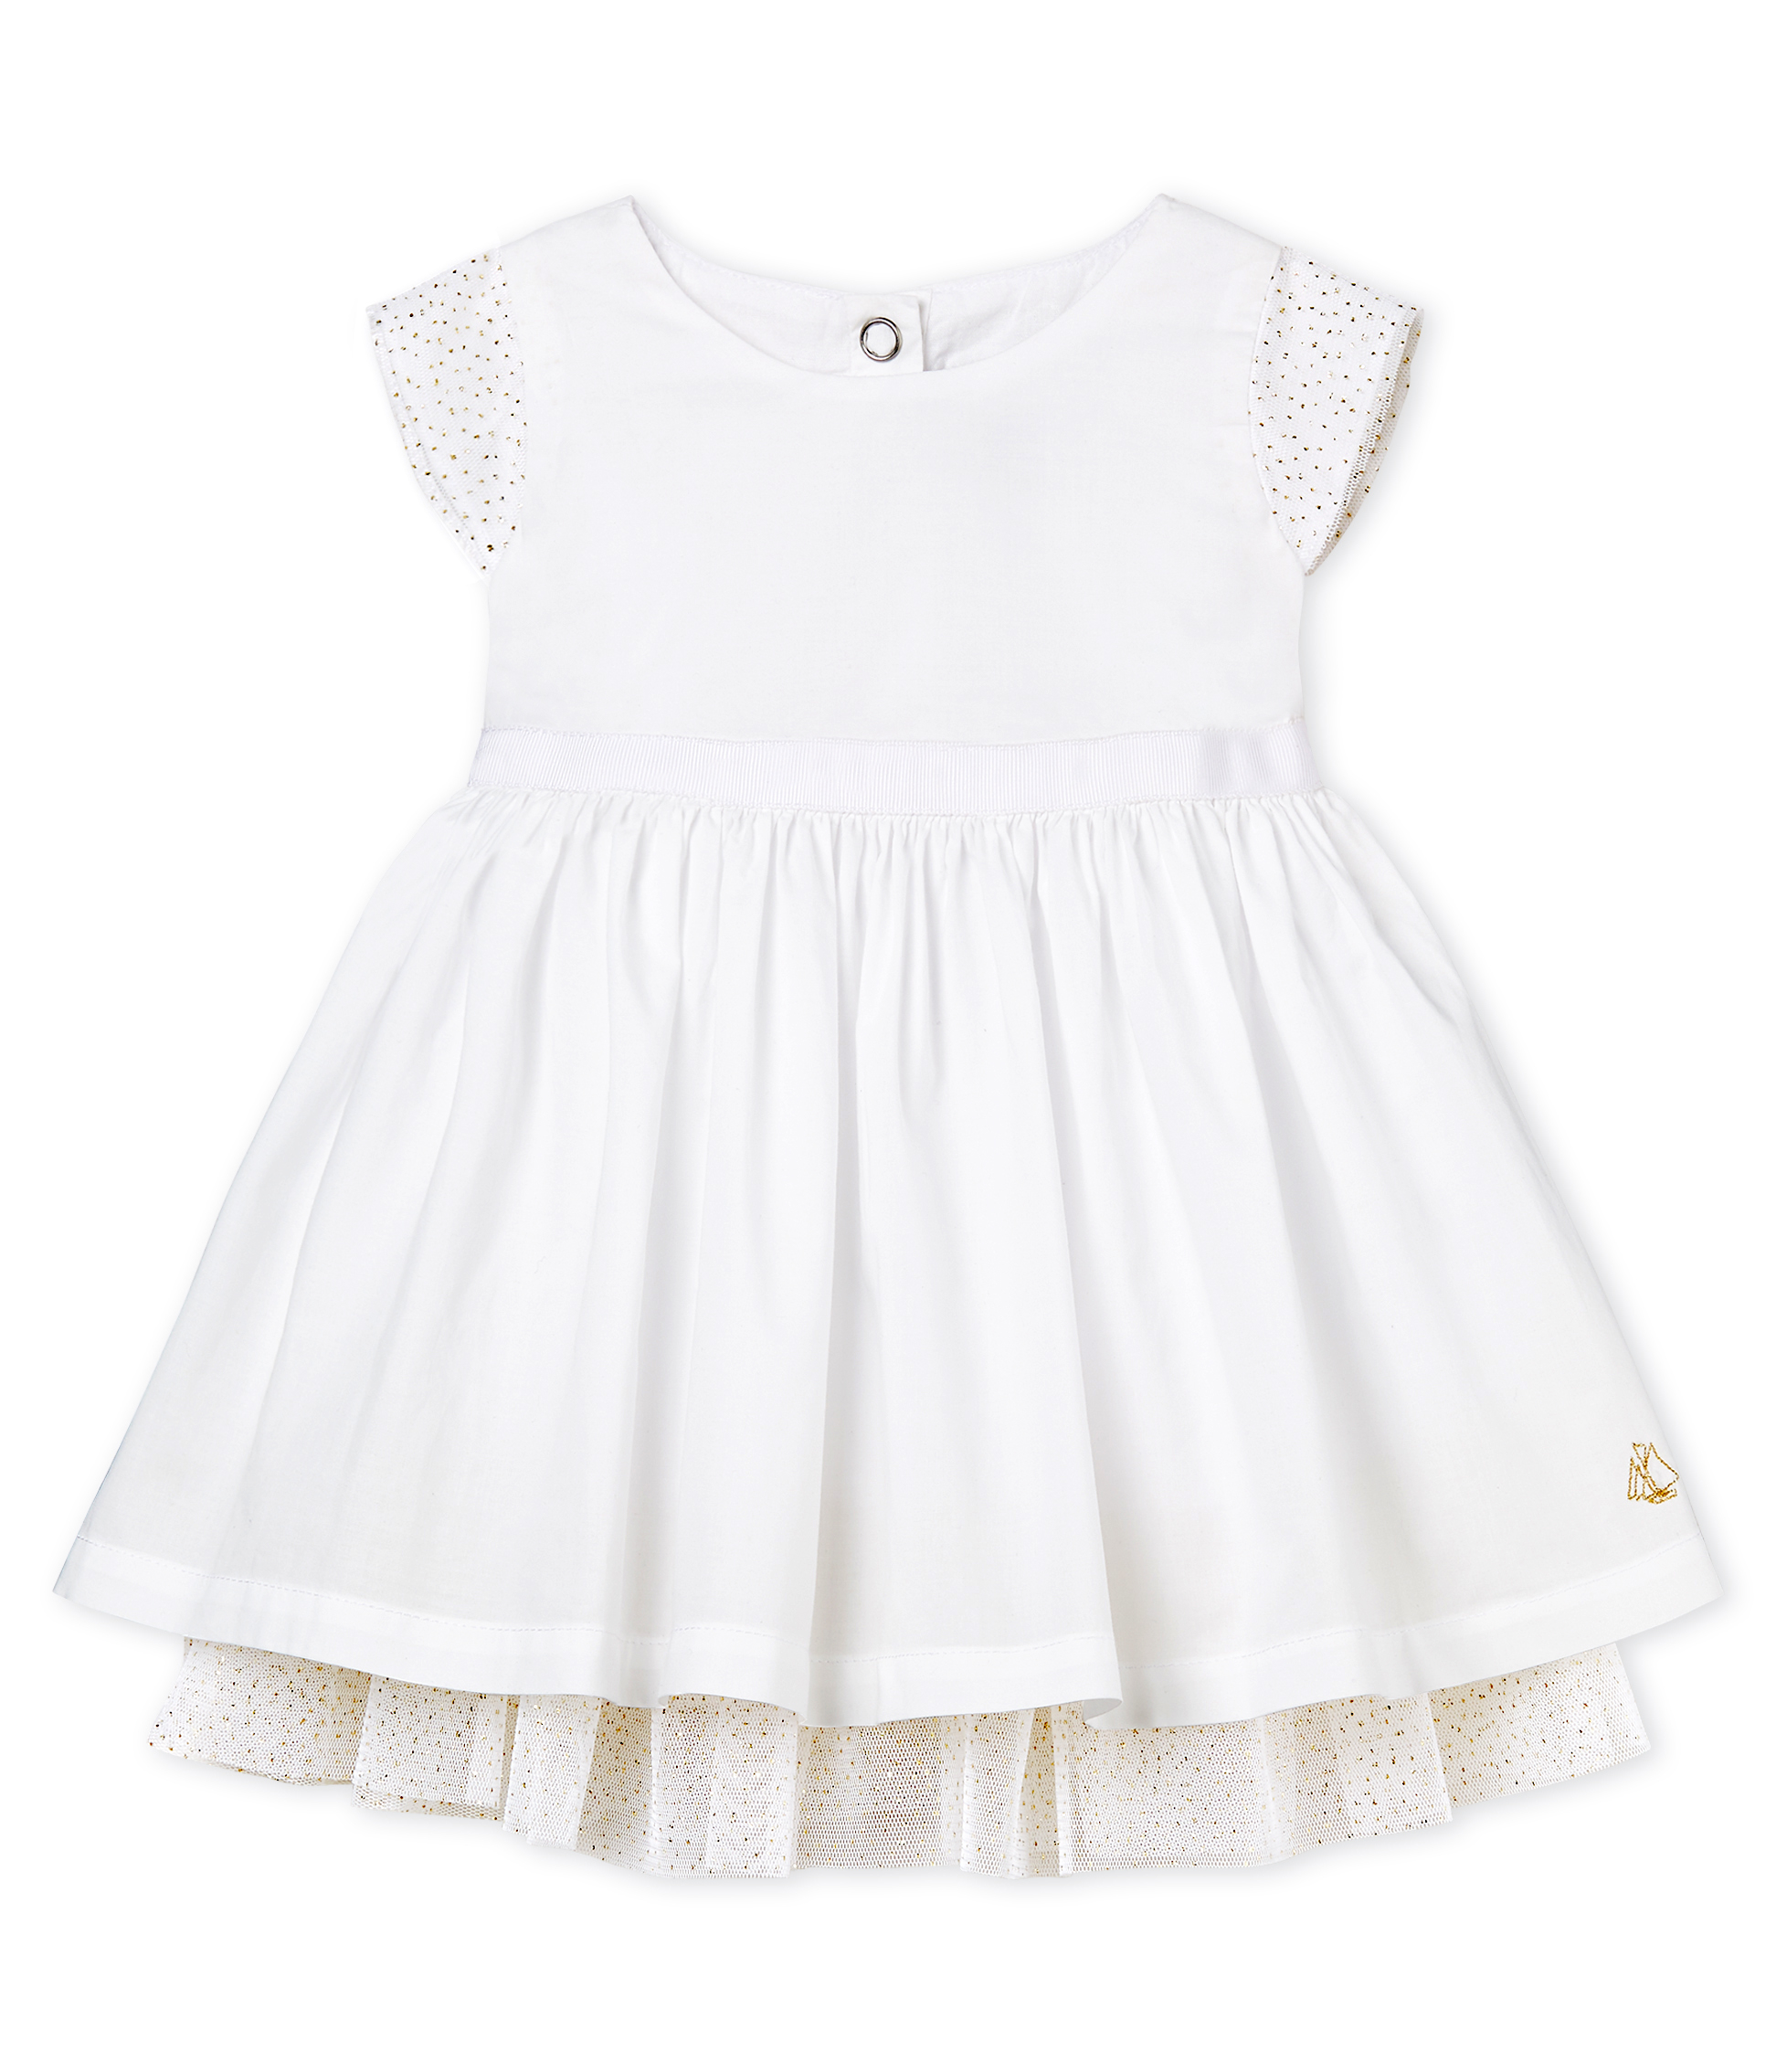 c91a70d2ae3 Baby Girls' short-sleeved Special Occasion Dress